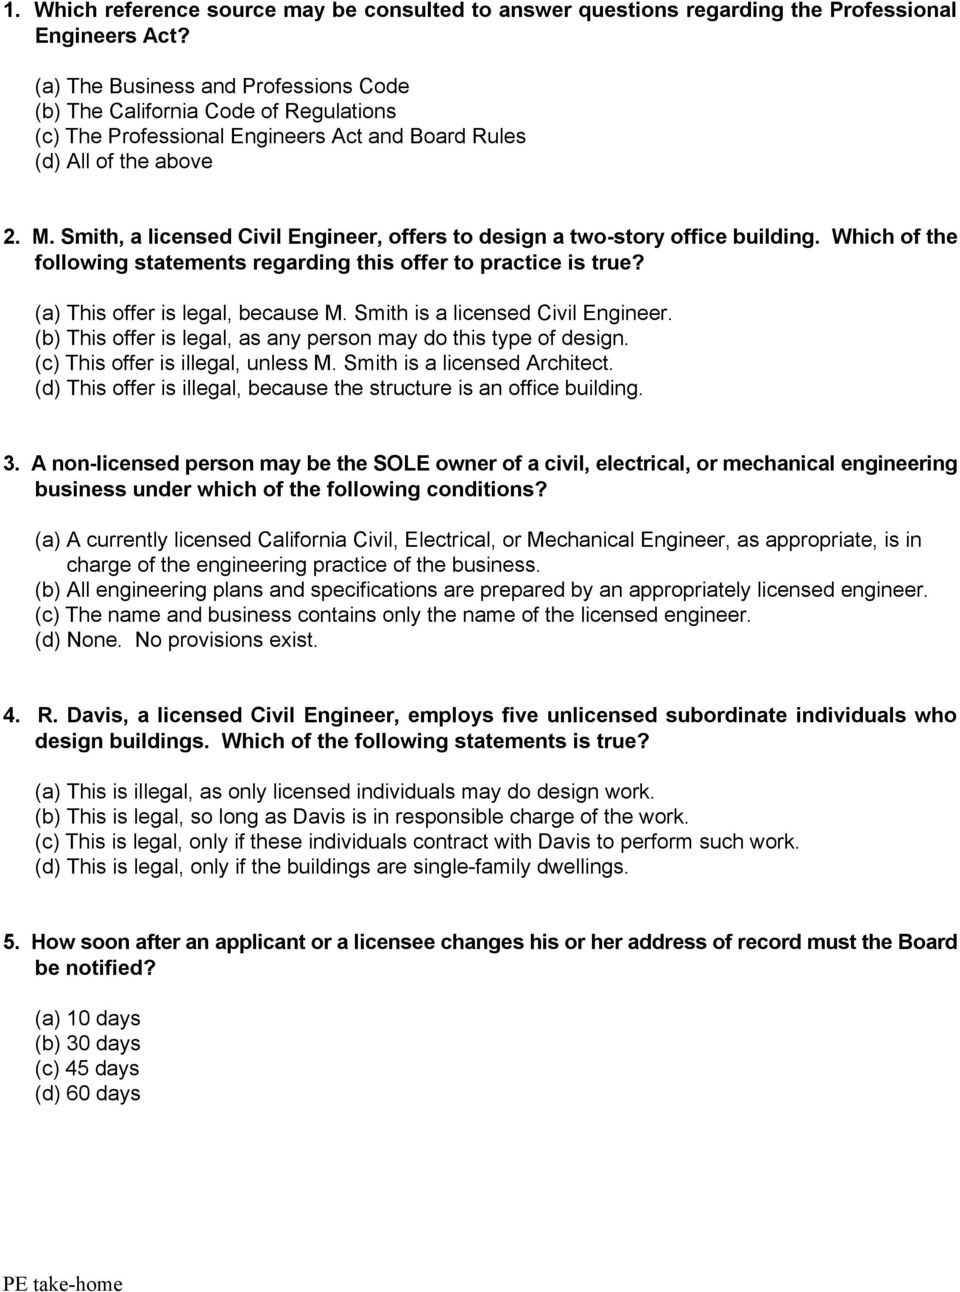 Smith, a licensed ivil Engineer, offers to design a two-story office building. Which of the following statements regarding this offer to practice is true? (a) This offer is legal, because M.